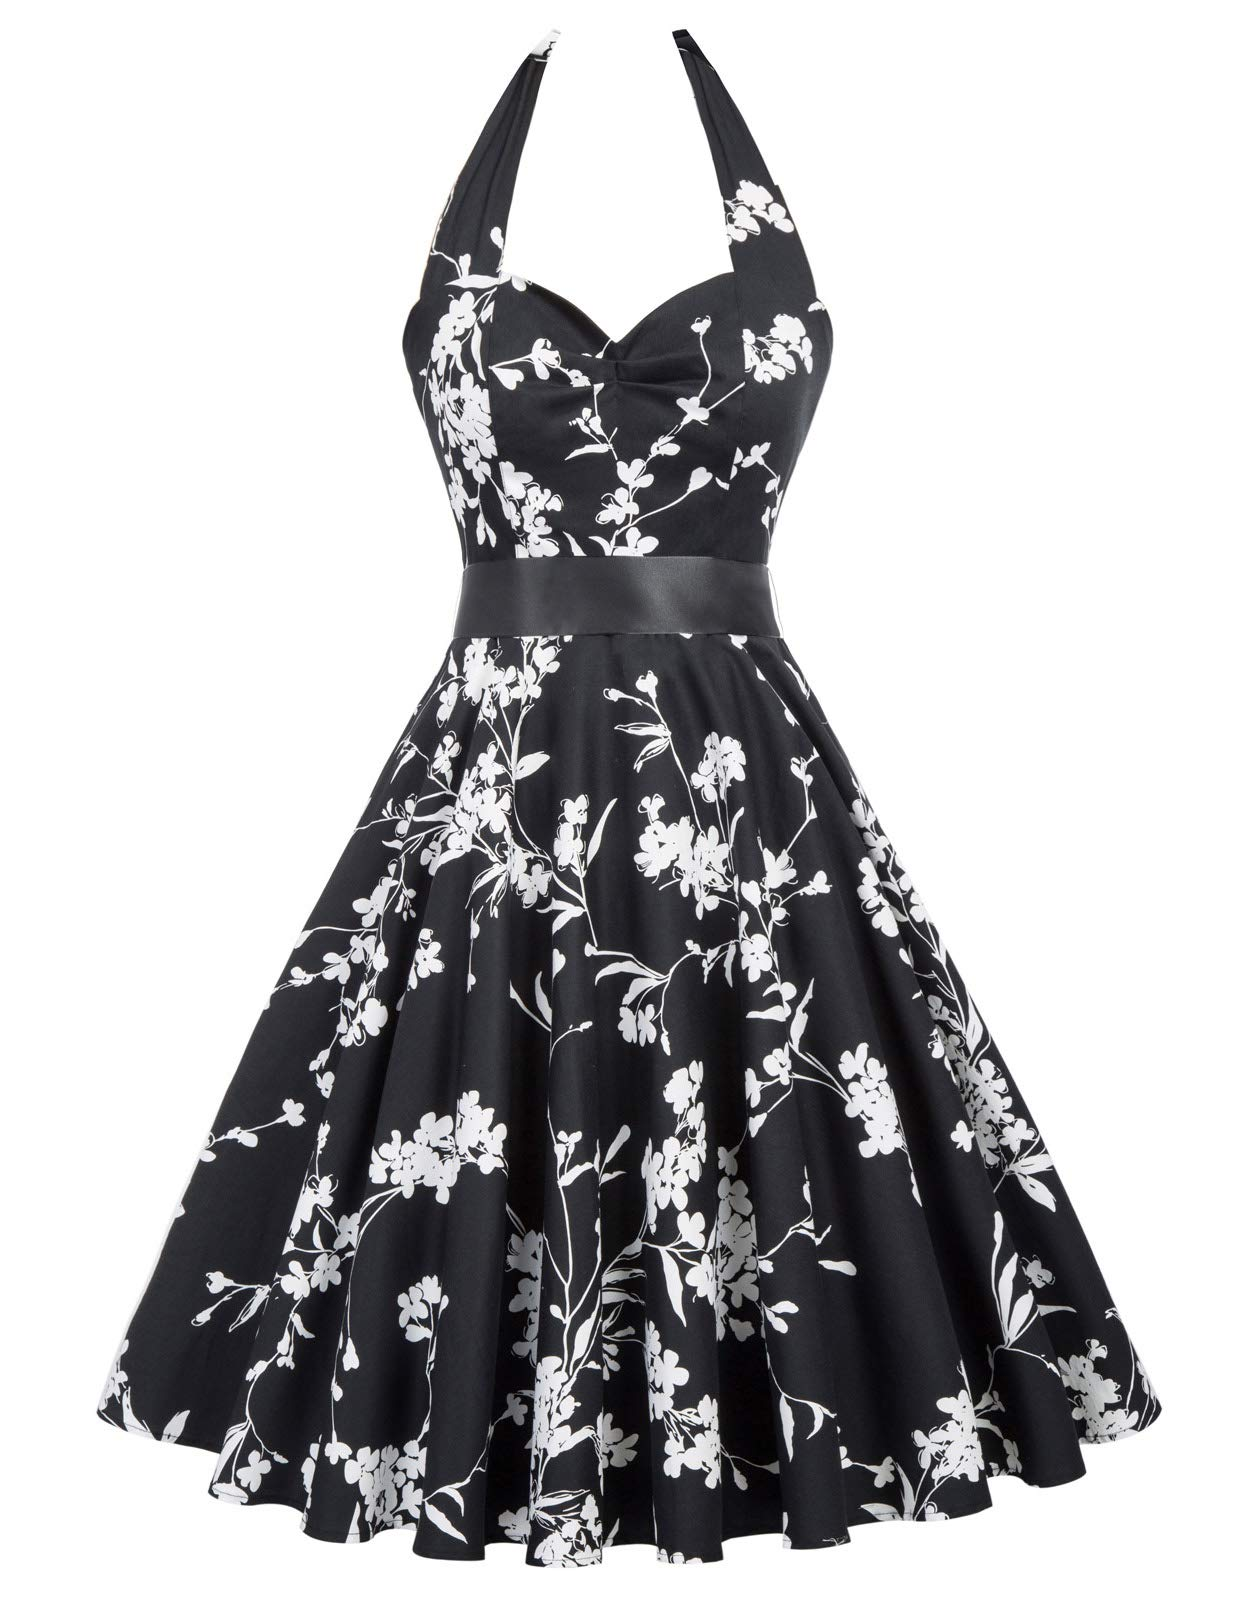 ACEVOG Womens Vintage 1950s Retro Rockabilly Prom Pleated A-Line Cocktail Party Swing Dress